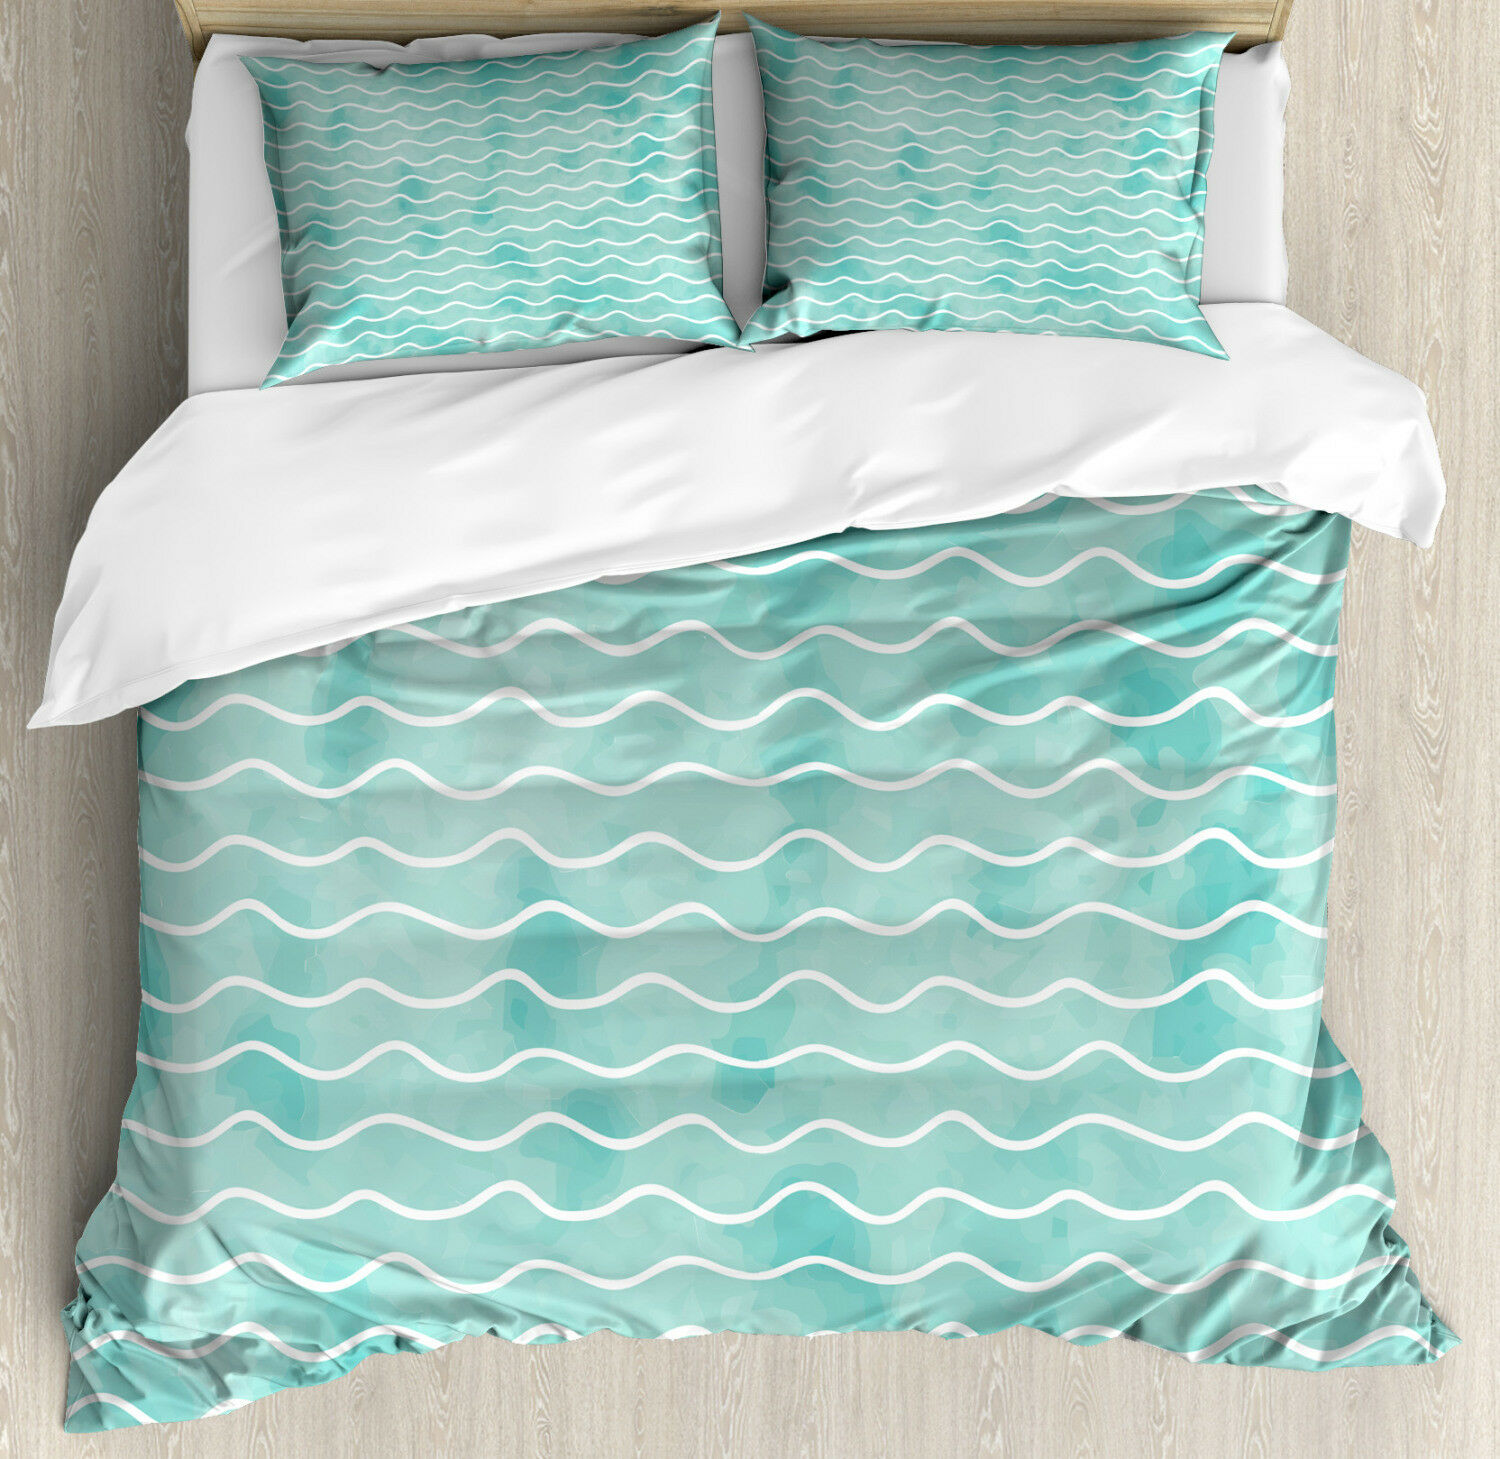 Nautical Duvet Cover Set with Pillow Shams Ocean Sea Wave Pattern Print